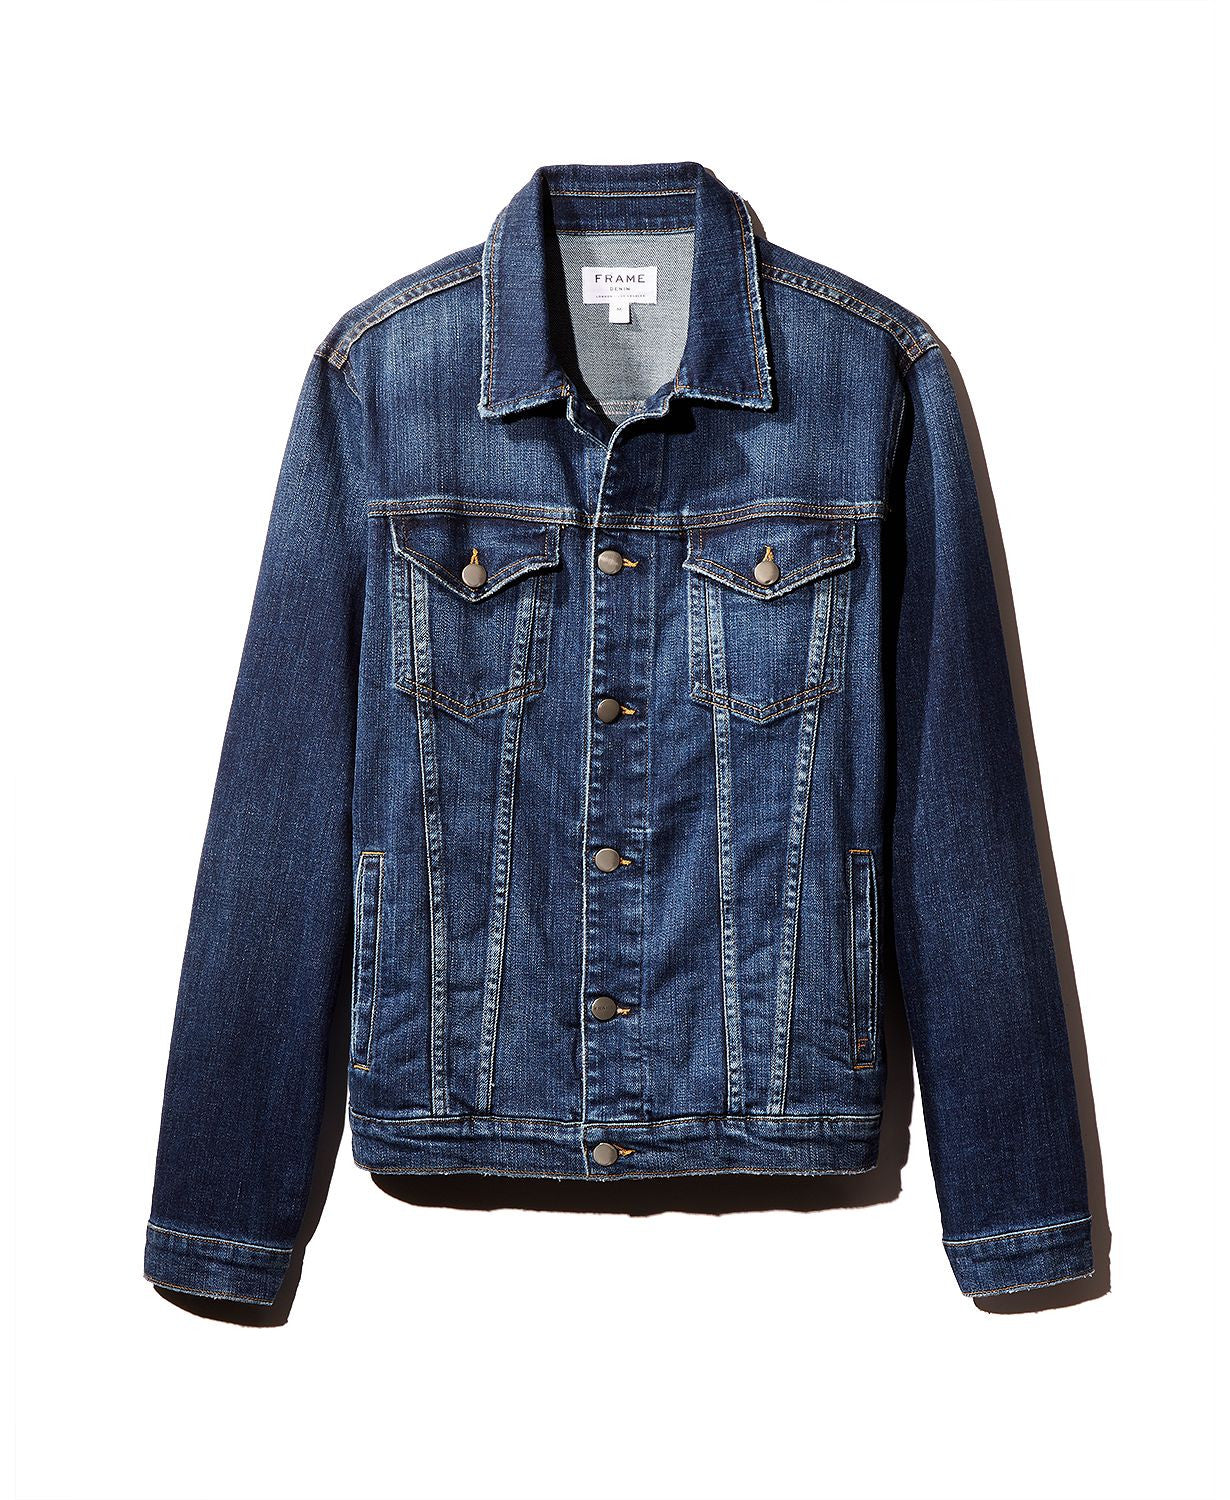 Frame L'homme Distressed Denim Jacket Presido